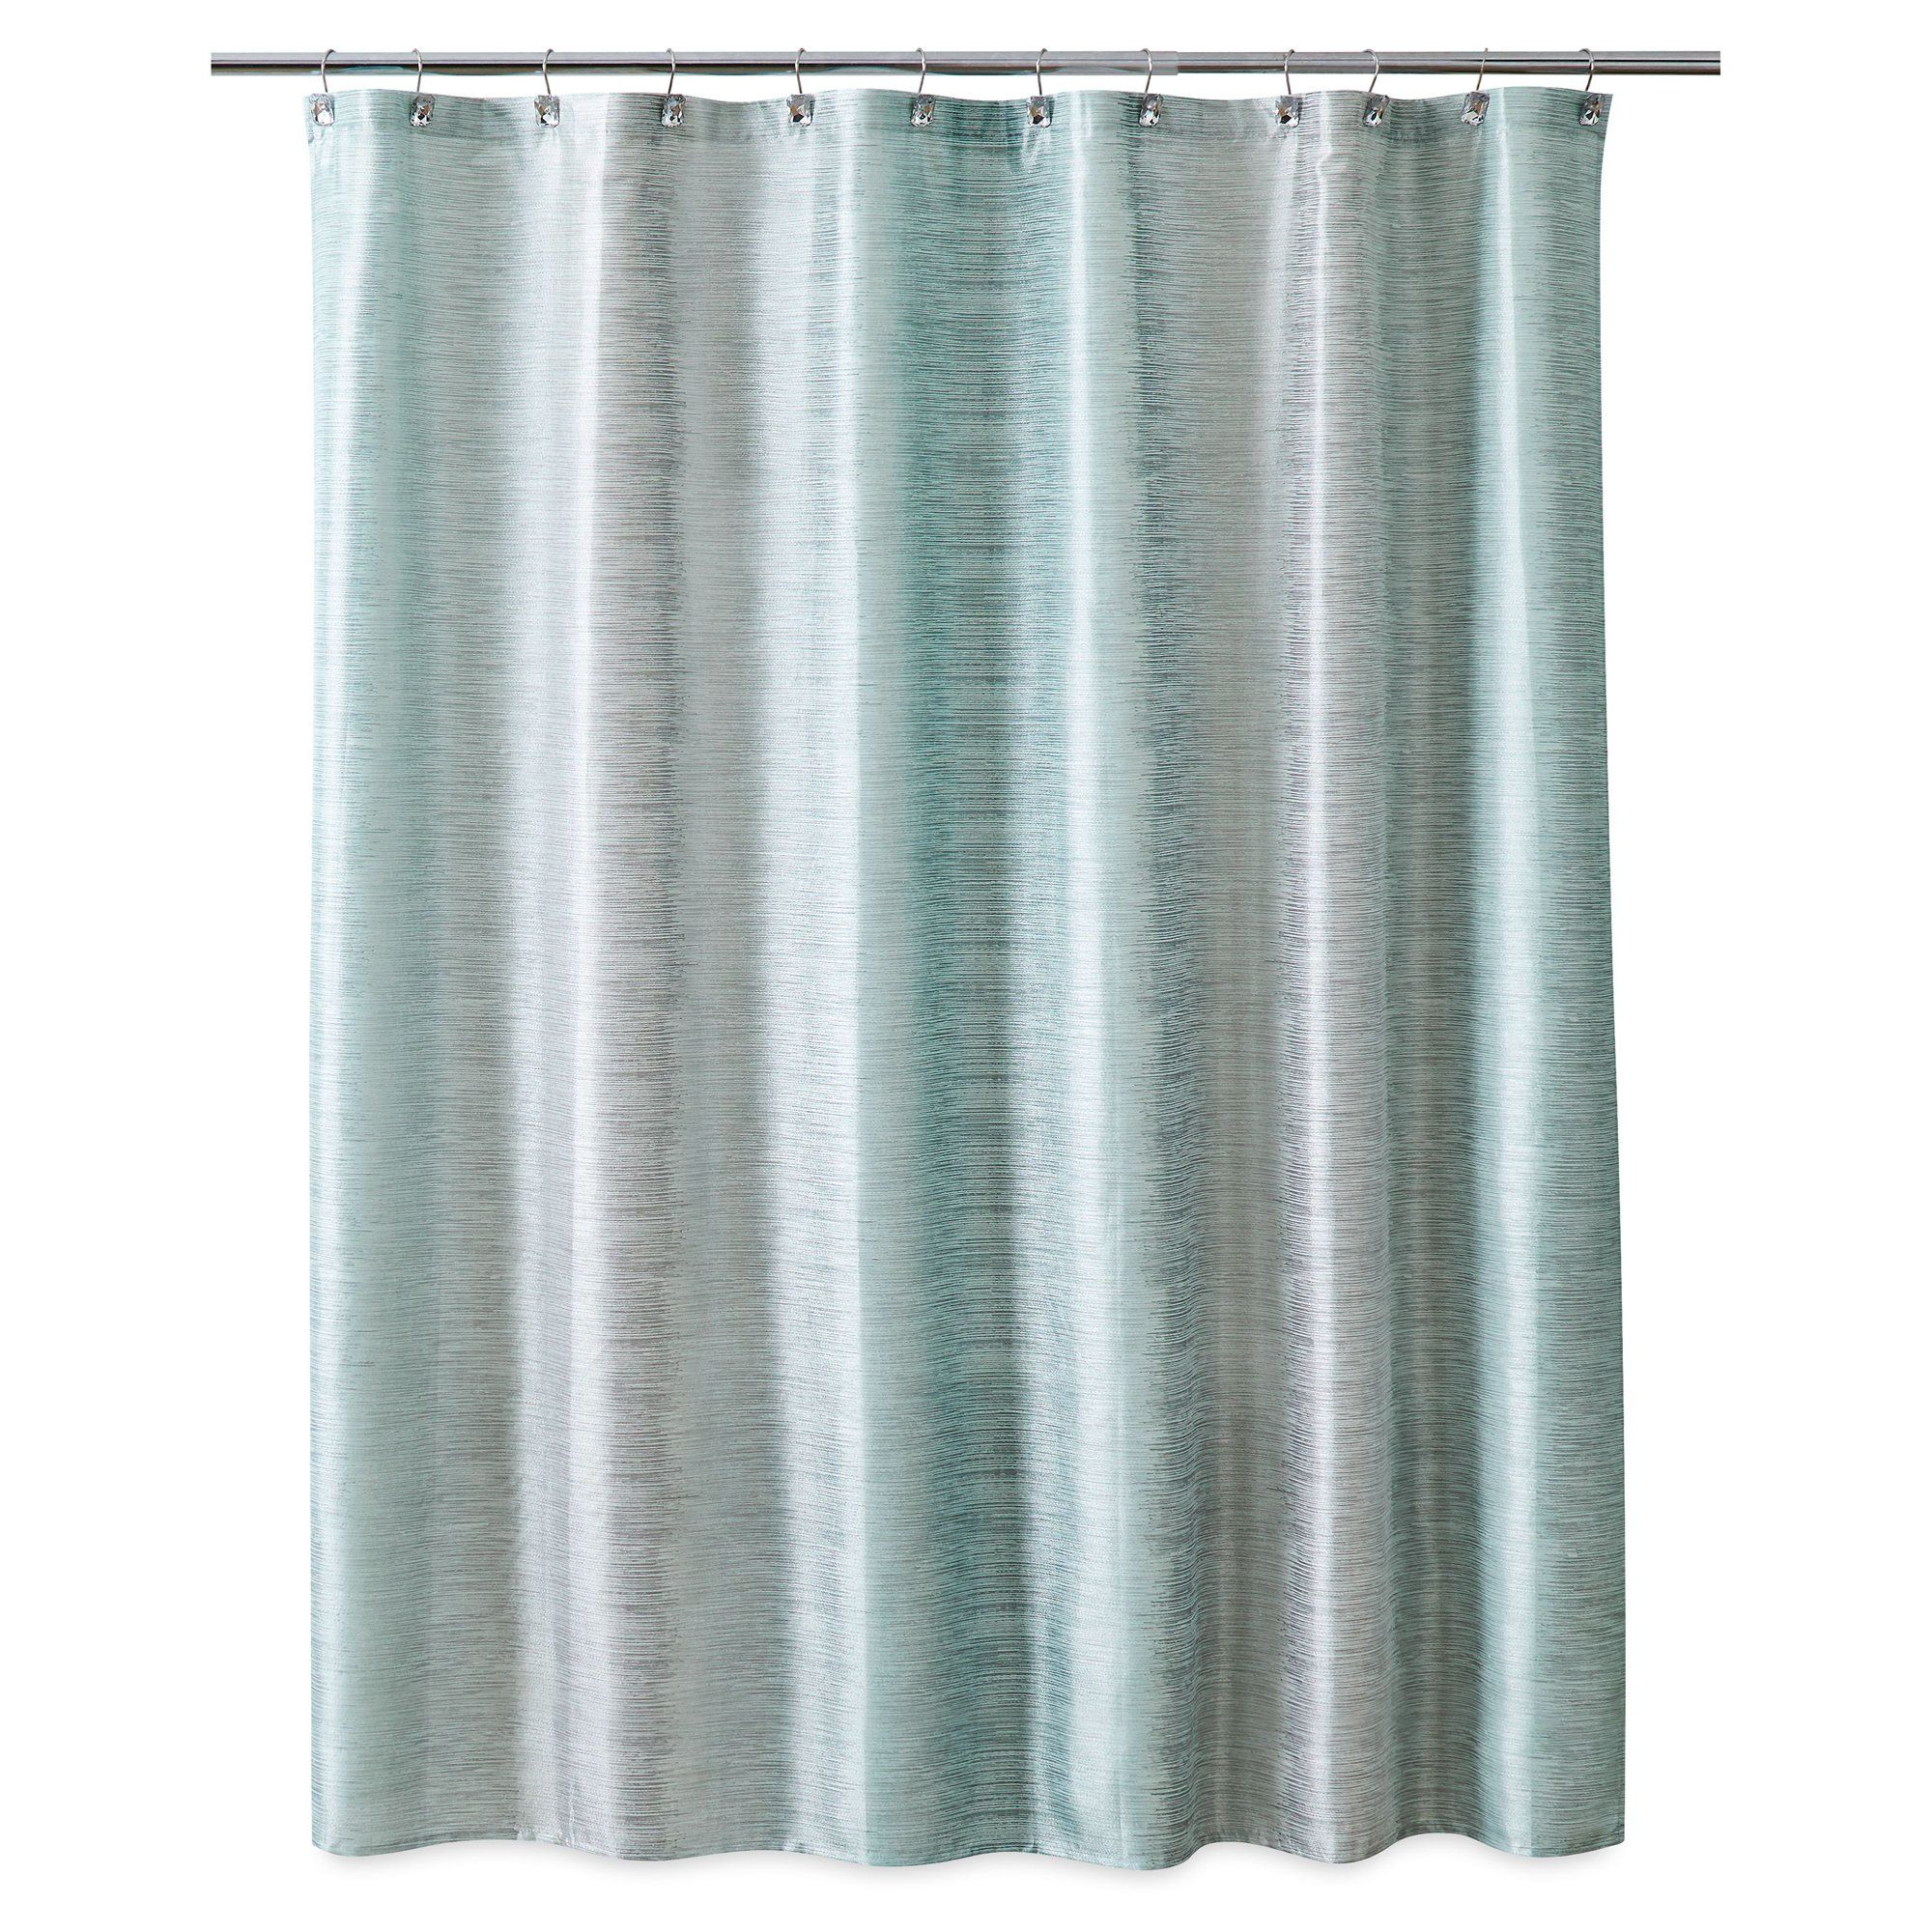 7e8fbb8544b5f84ff45e7bb4e2ee1450 - Better Homes And Gardens Glimmer Shower Curtain